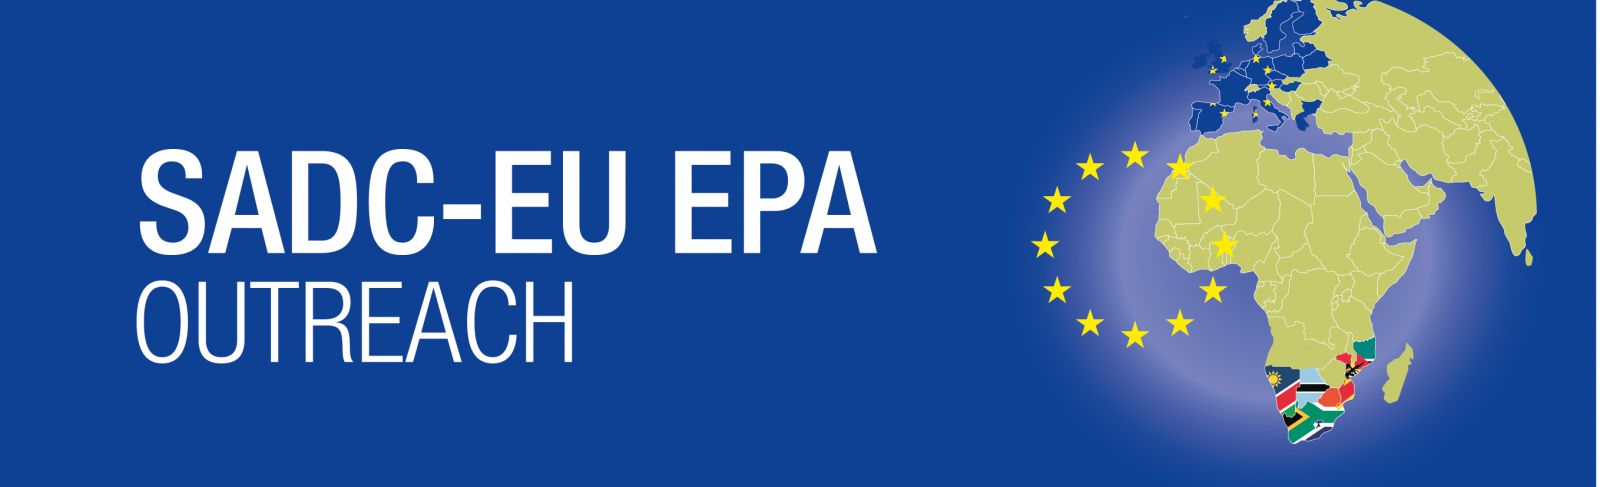 SADC - EU EPA Agreement